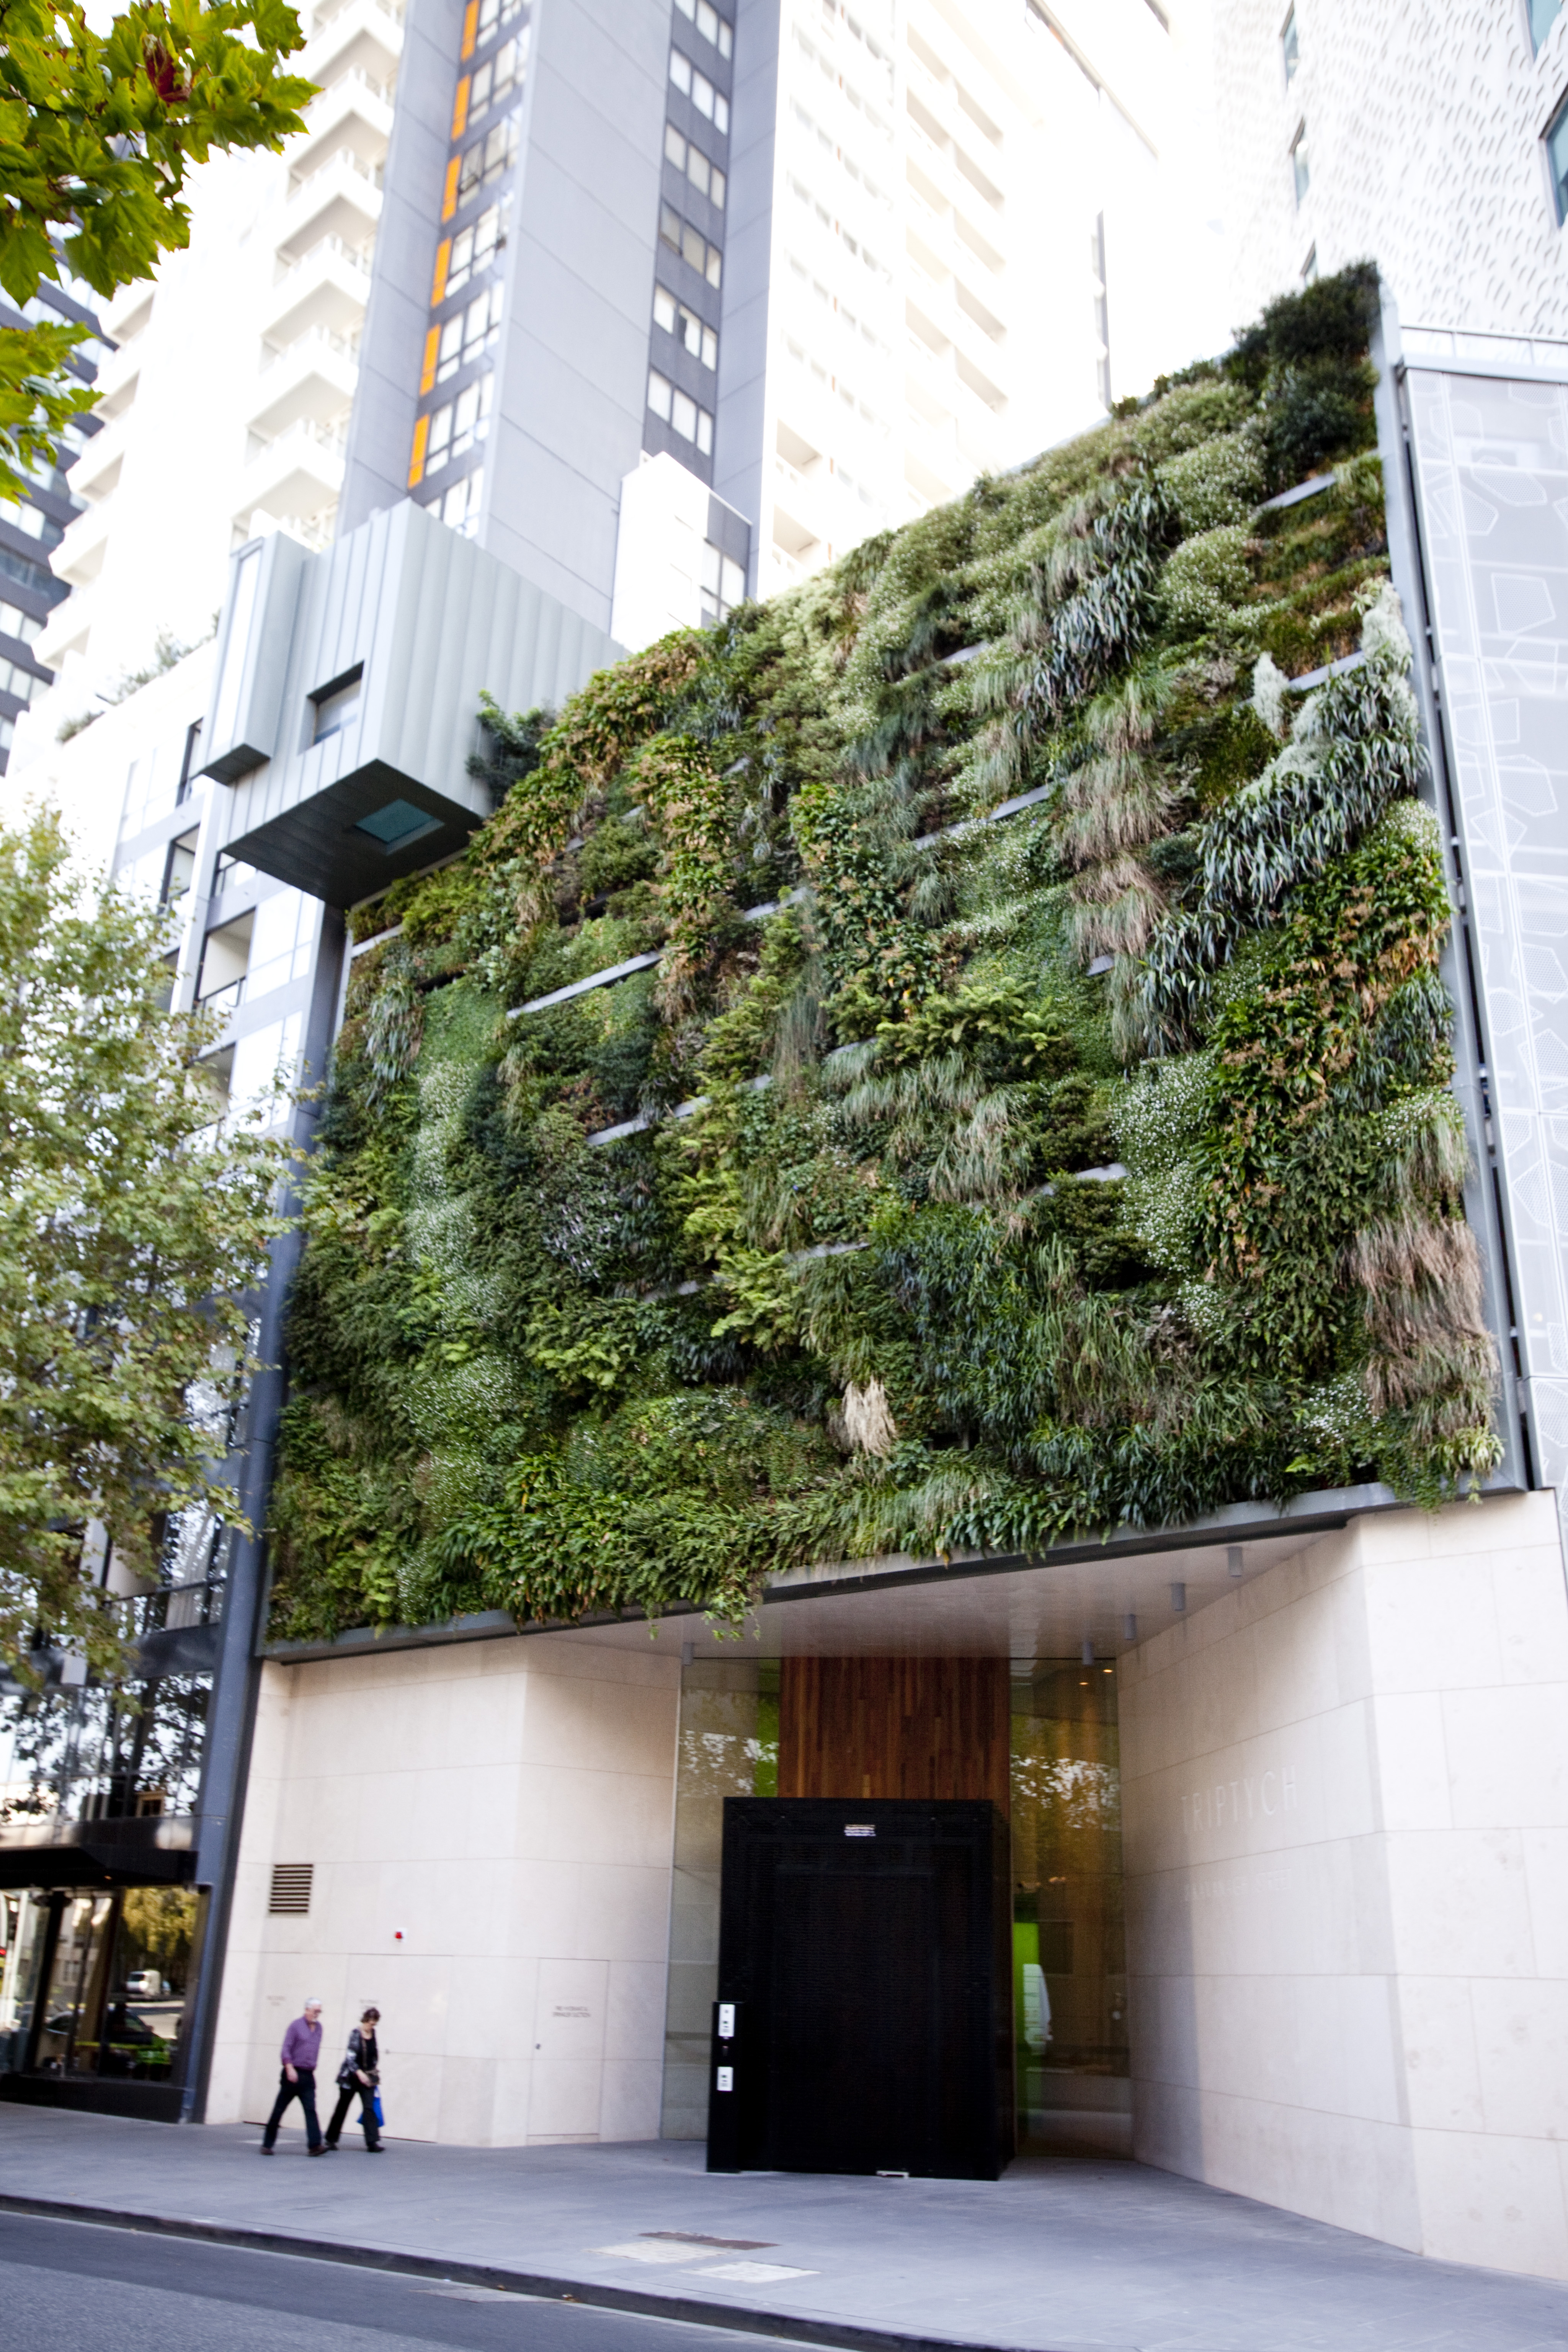 Green wall installed at the front of a a multi-story apartment building in Southbank. Green infrastructure, such as green walls, provides an example of how we can connect habitats through vegetation corridors in the more dense urban areas of the municipality (Photo Credit: City of Melbourne).